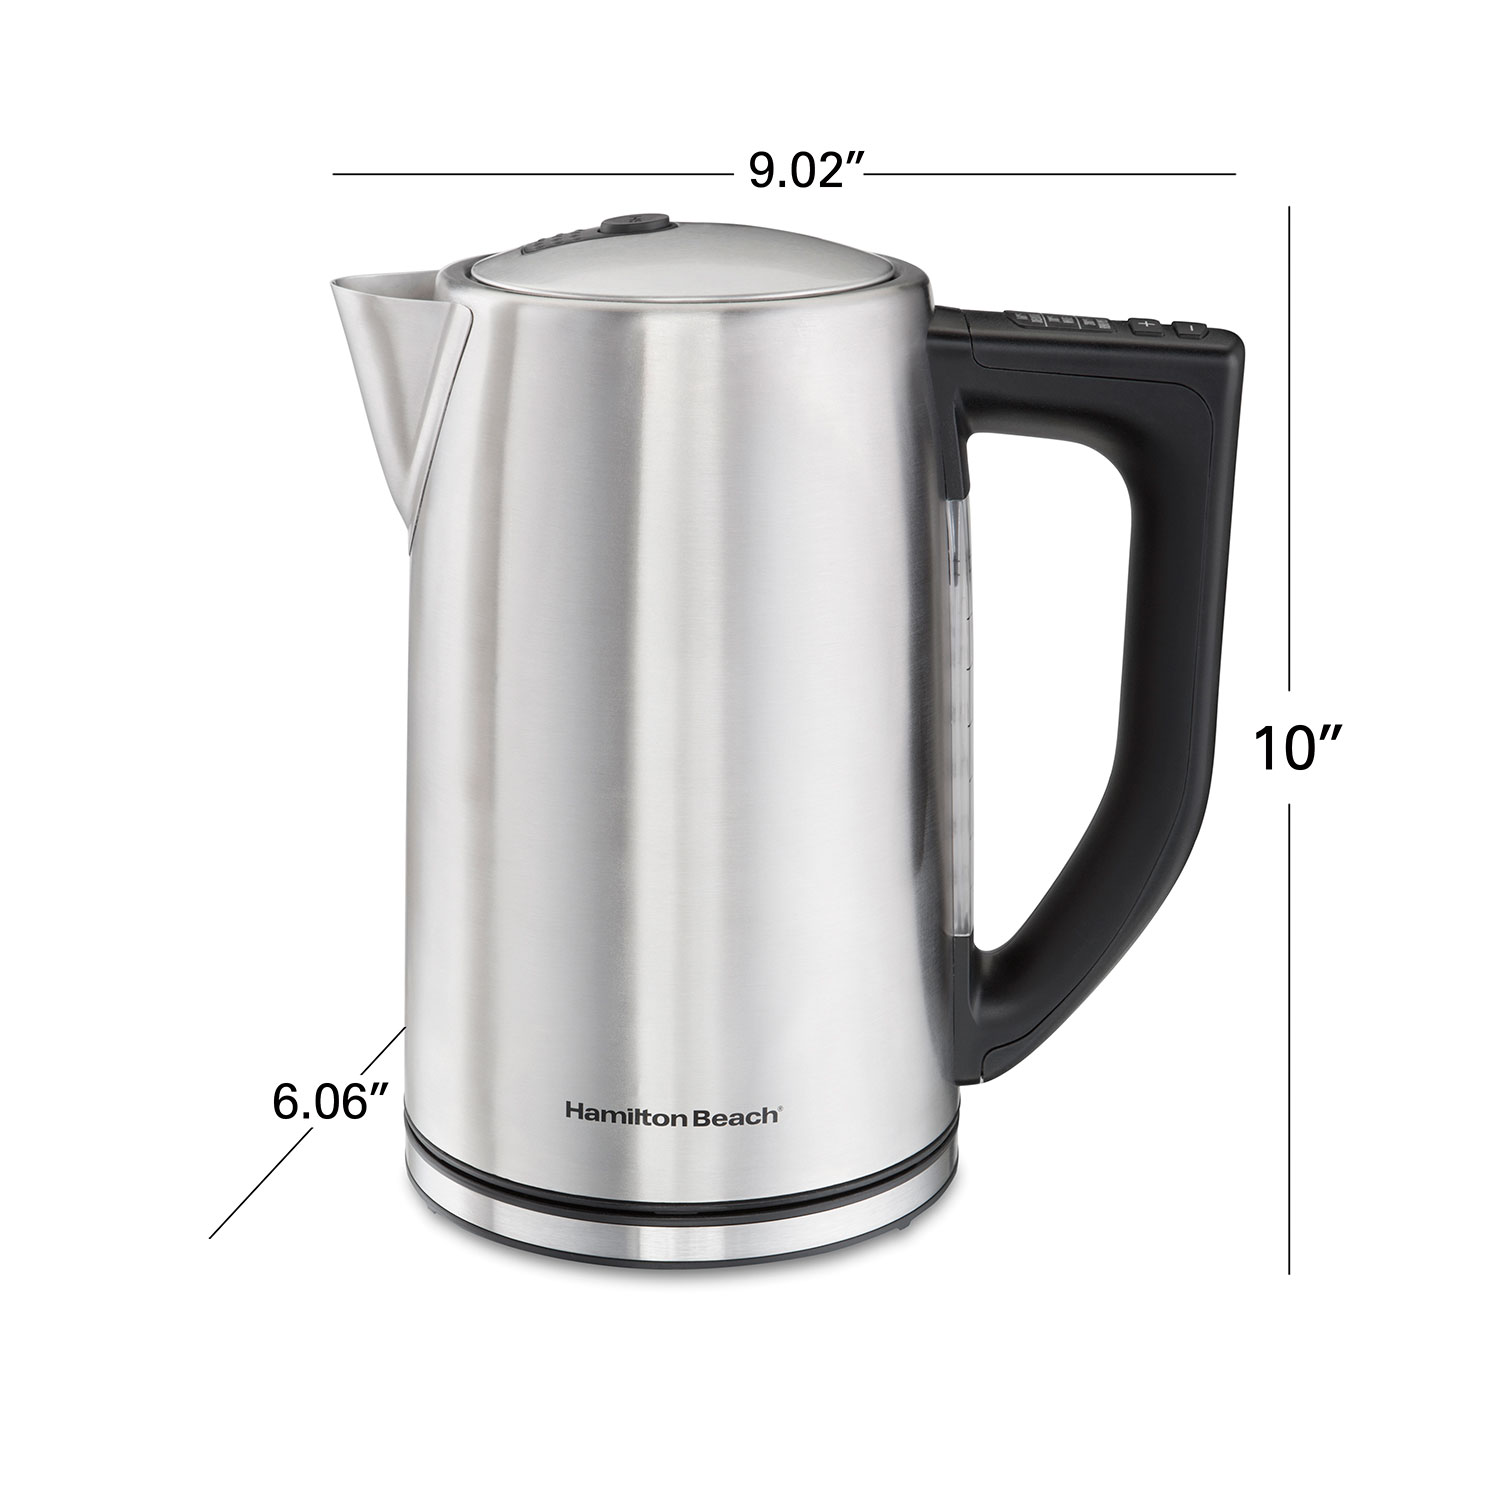 Brushed Stainless 1.7 Liter Variable Temperature Kettle (41025)